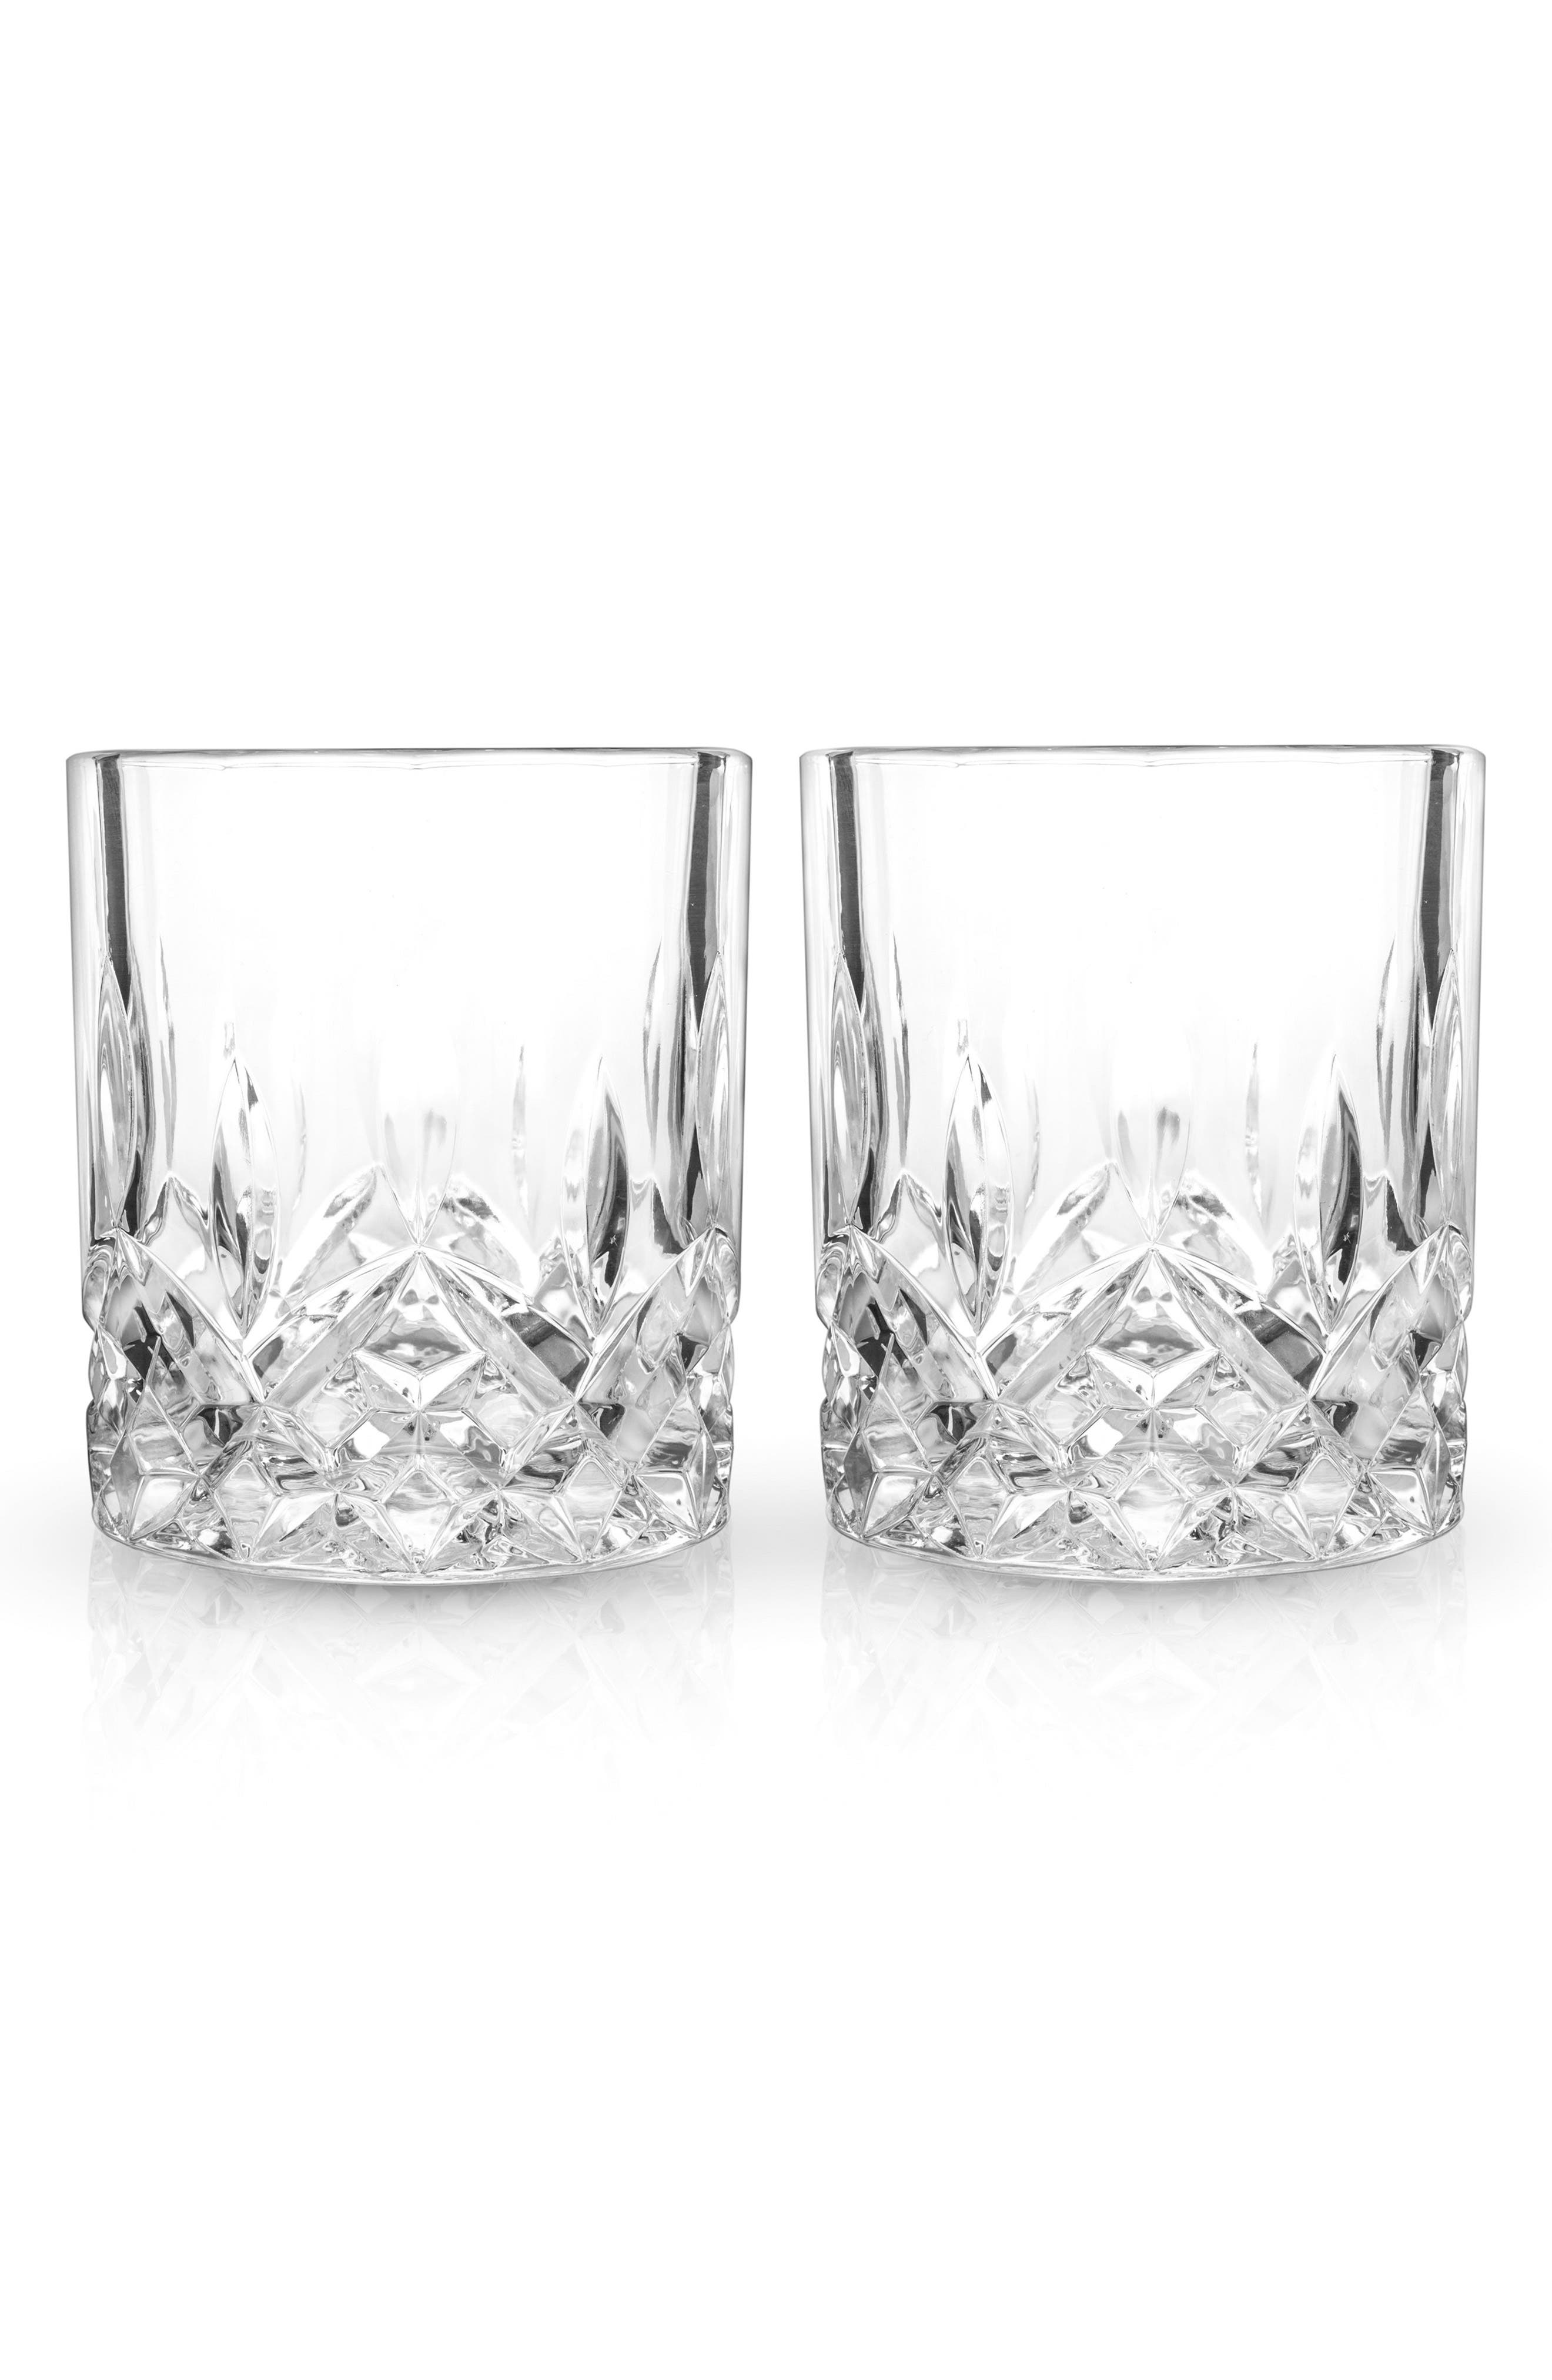 Admiral Set of 2 Double Old-Fashioned Glasses,                         Main,                         color, Clear